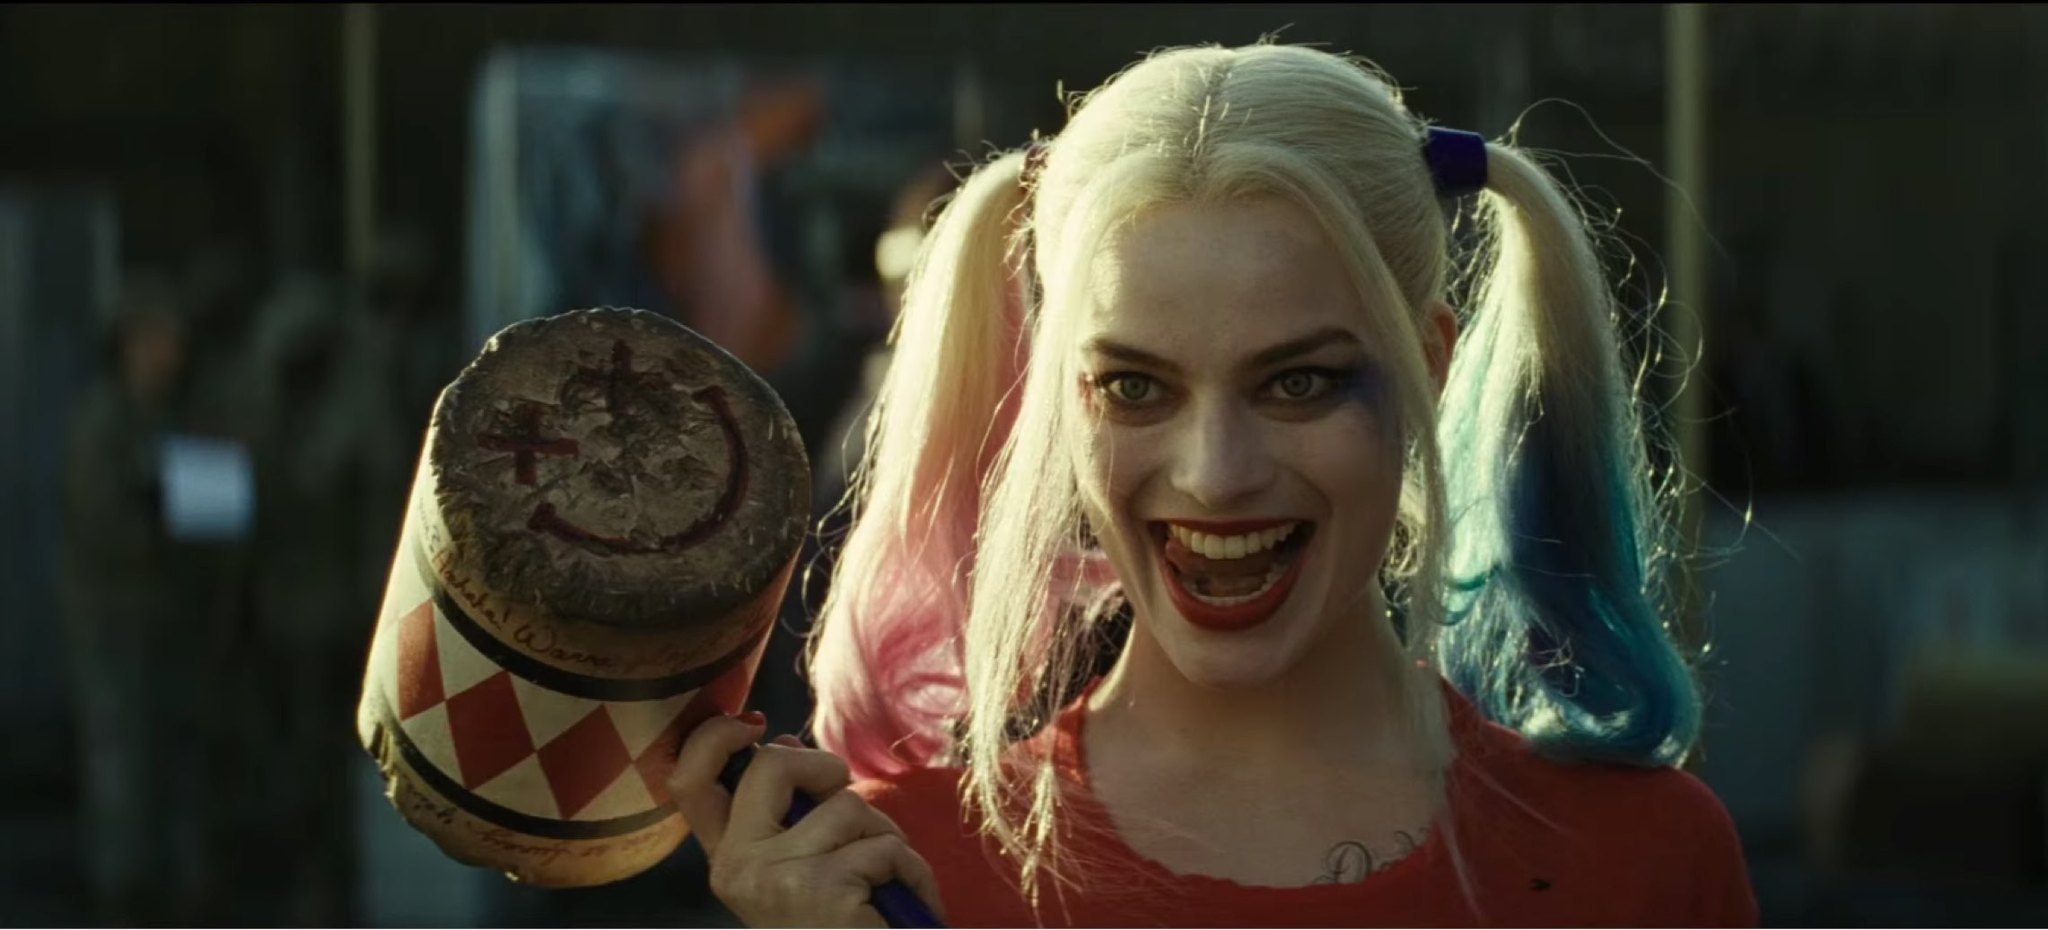 la-et-hc-margot-robbie-on-harley-quinn-20160412